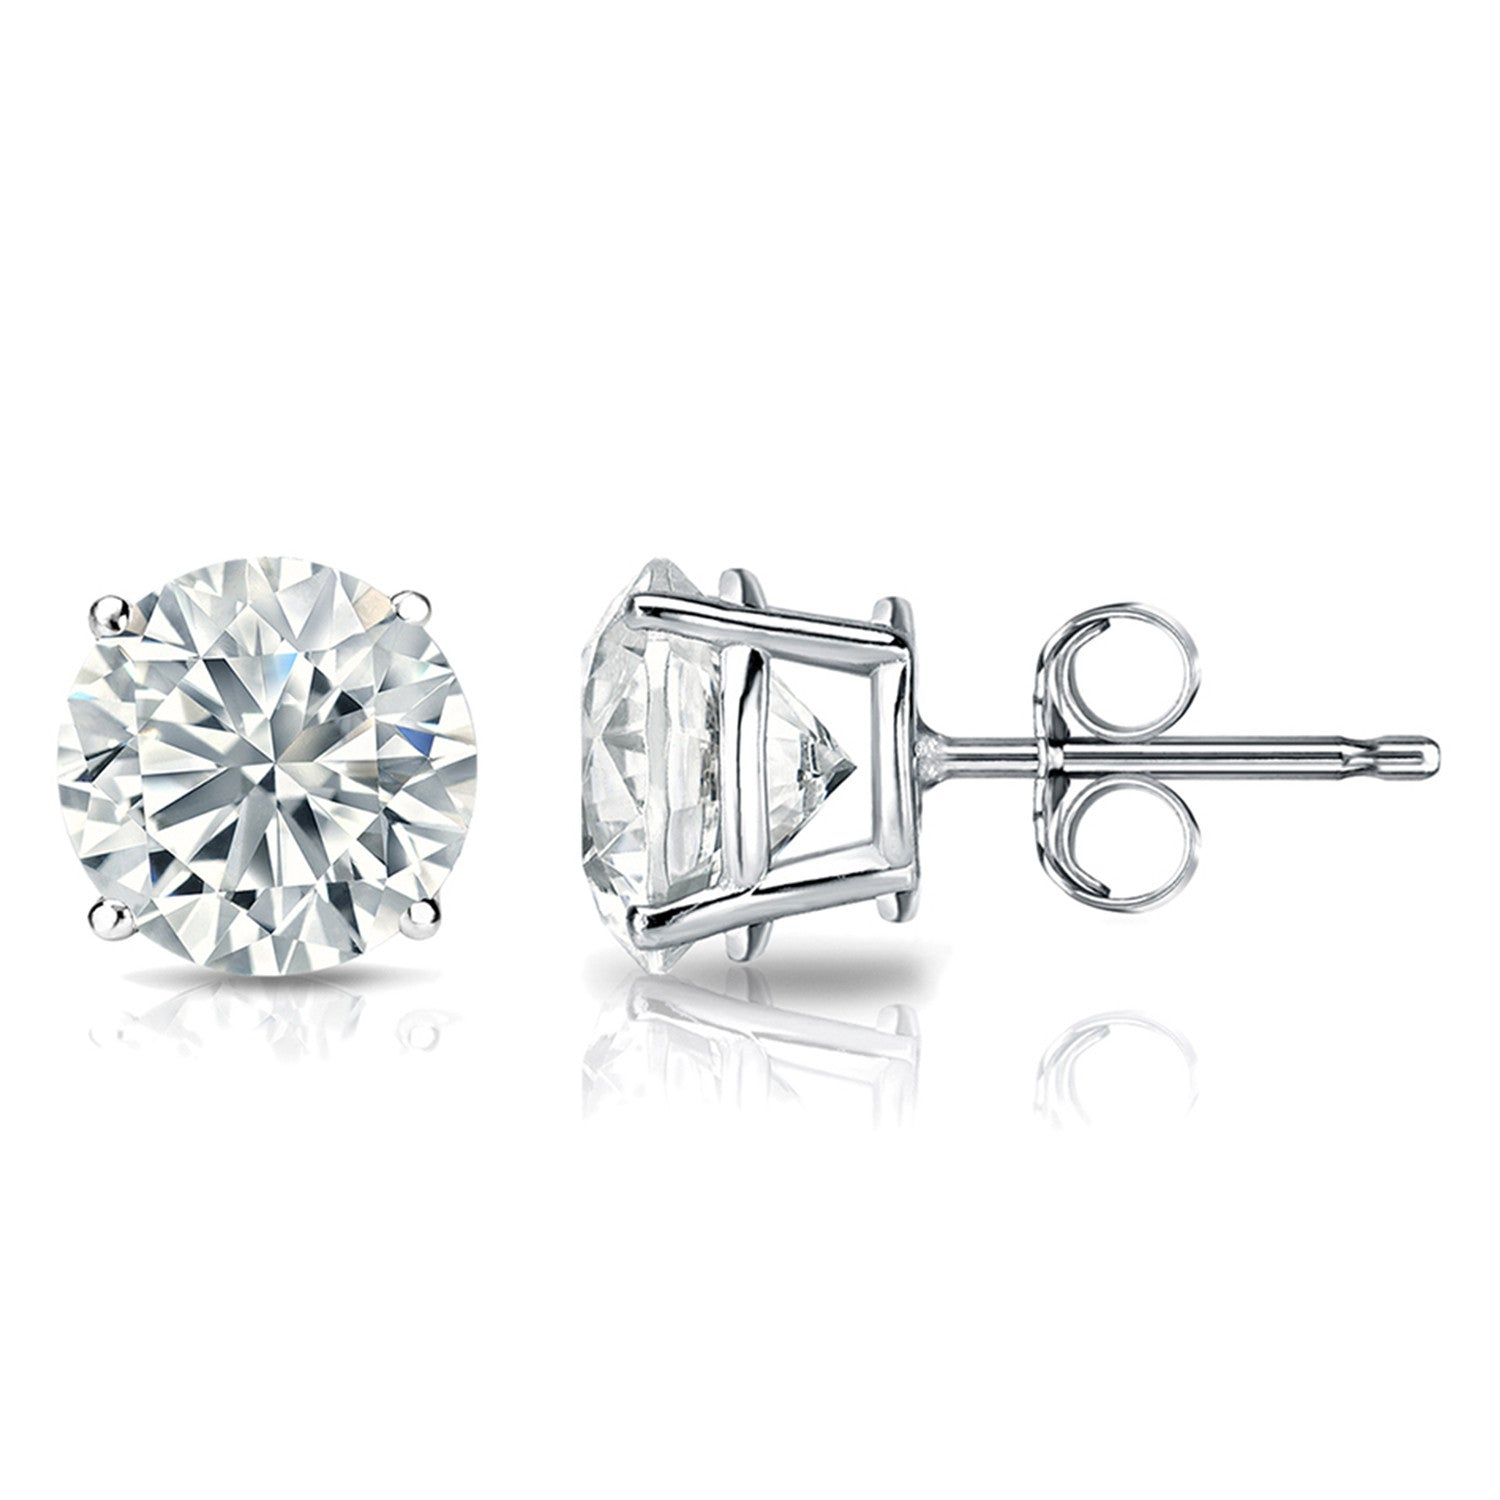 4 TCW Round Brilliant Cut Diamond Solitaire Stud Earrings 14kt White Gold